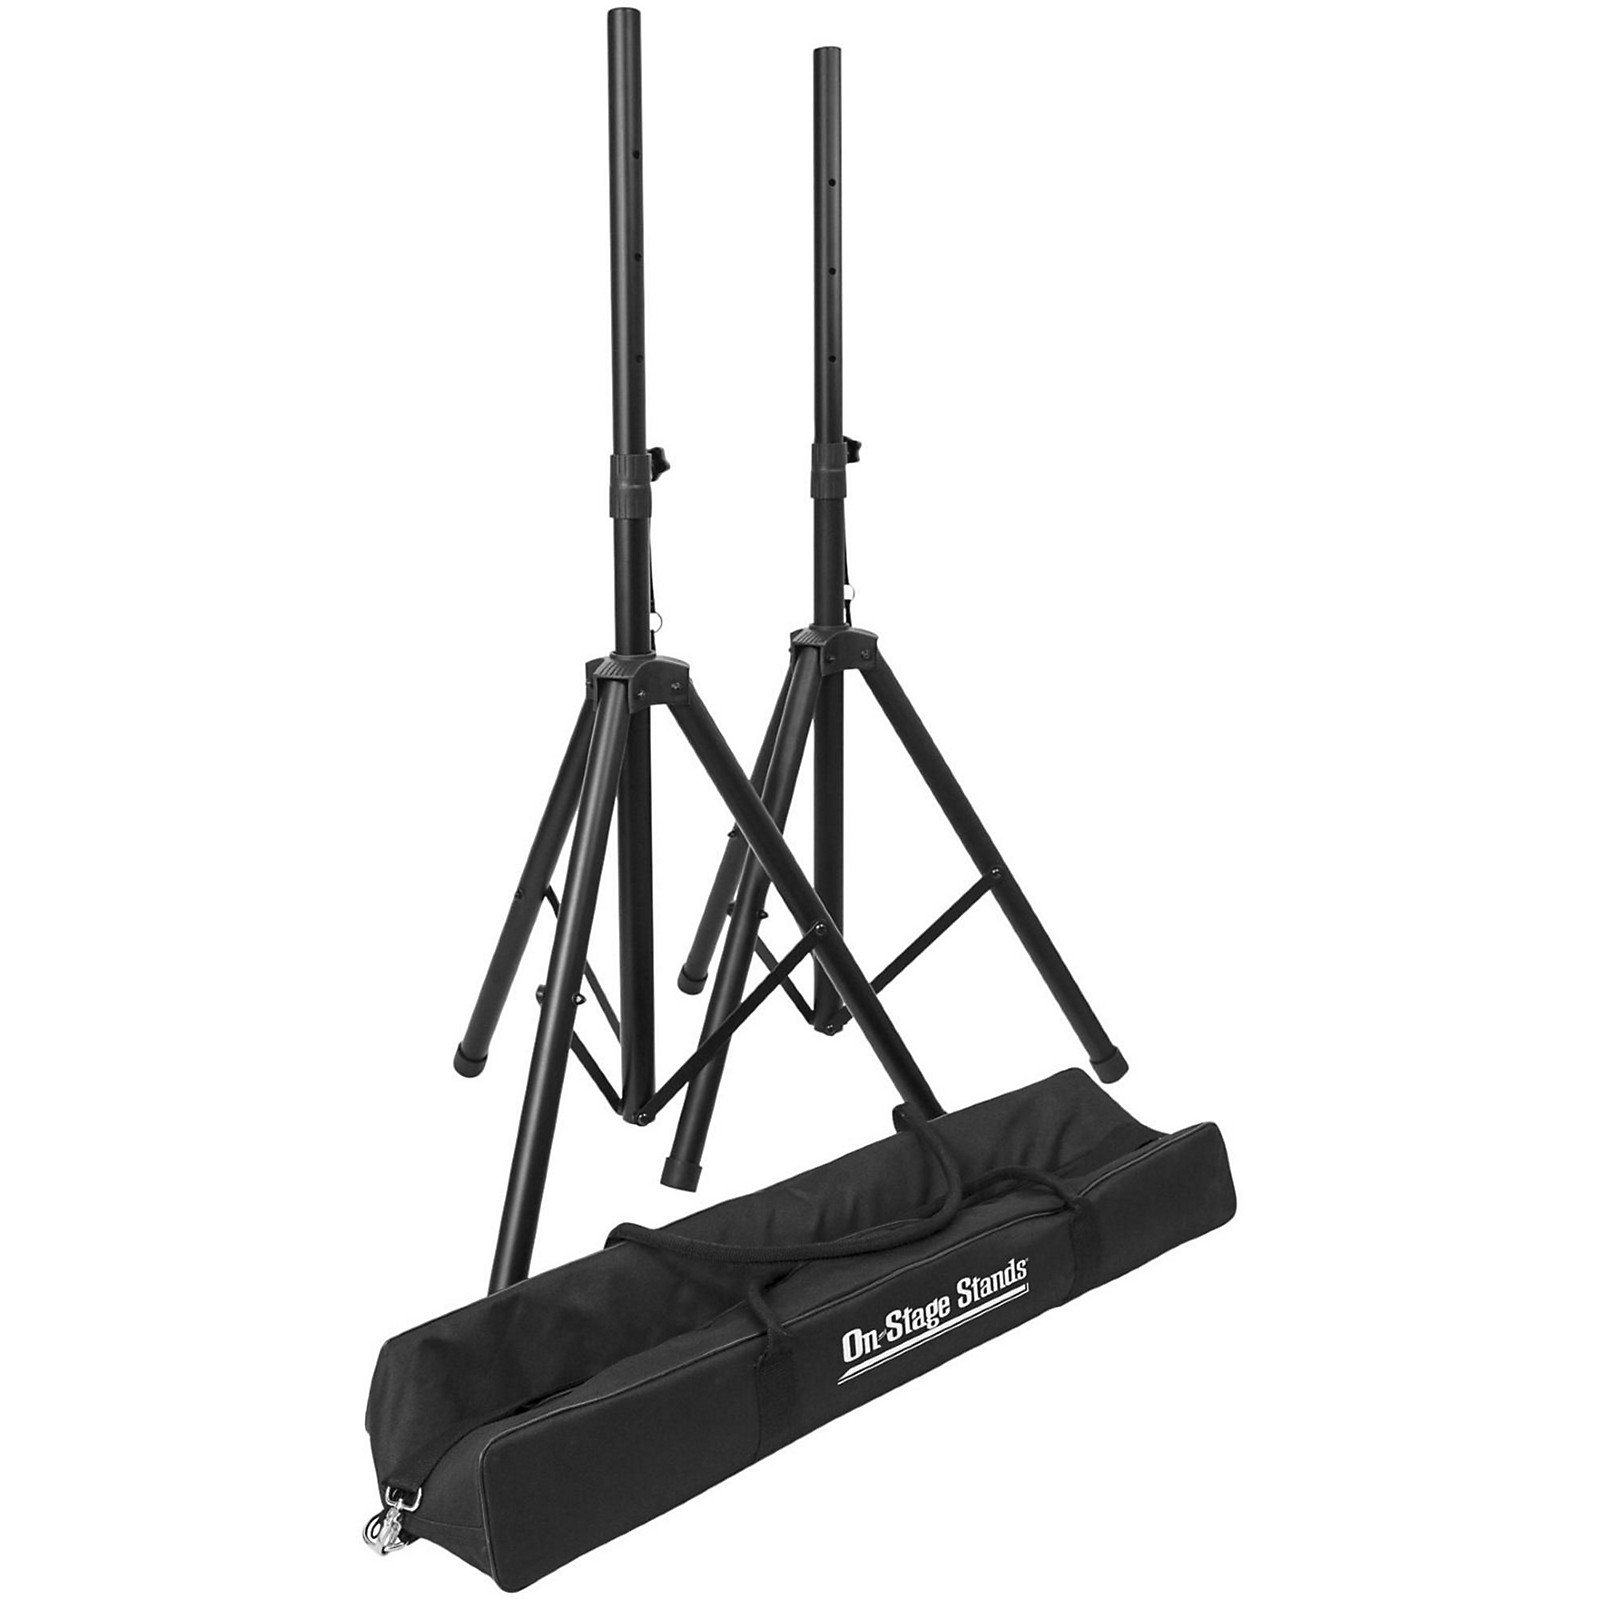 On-Stage Compact Speaker Stand Pack